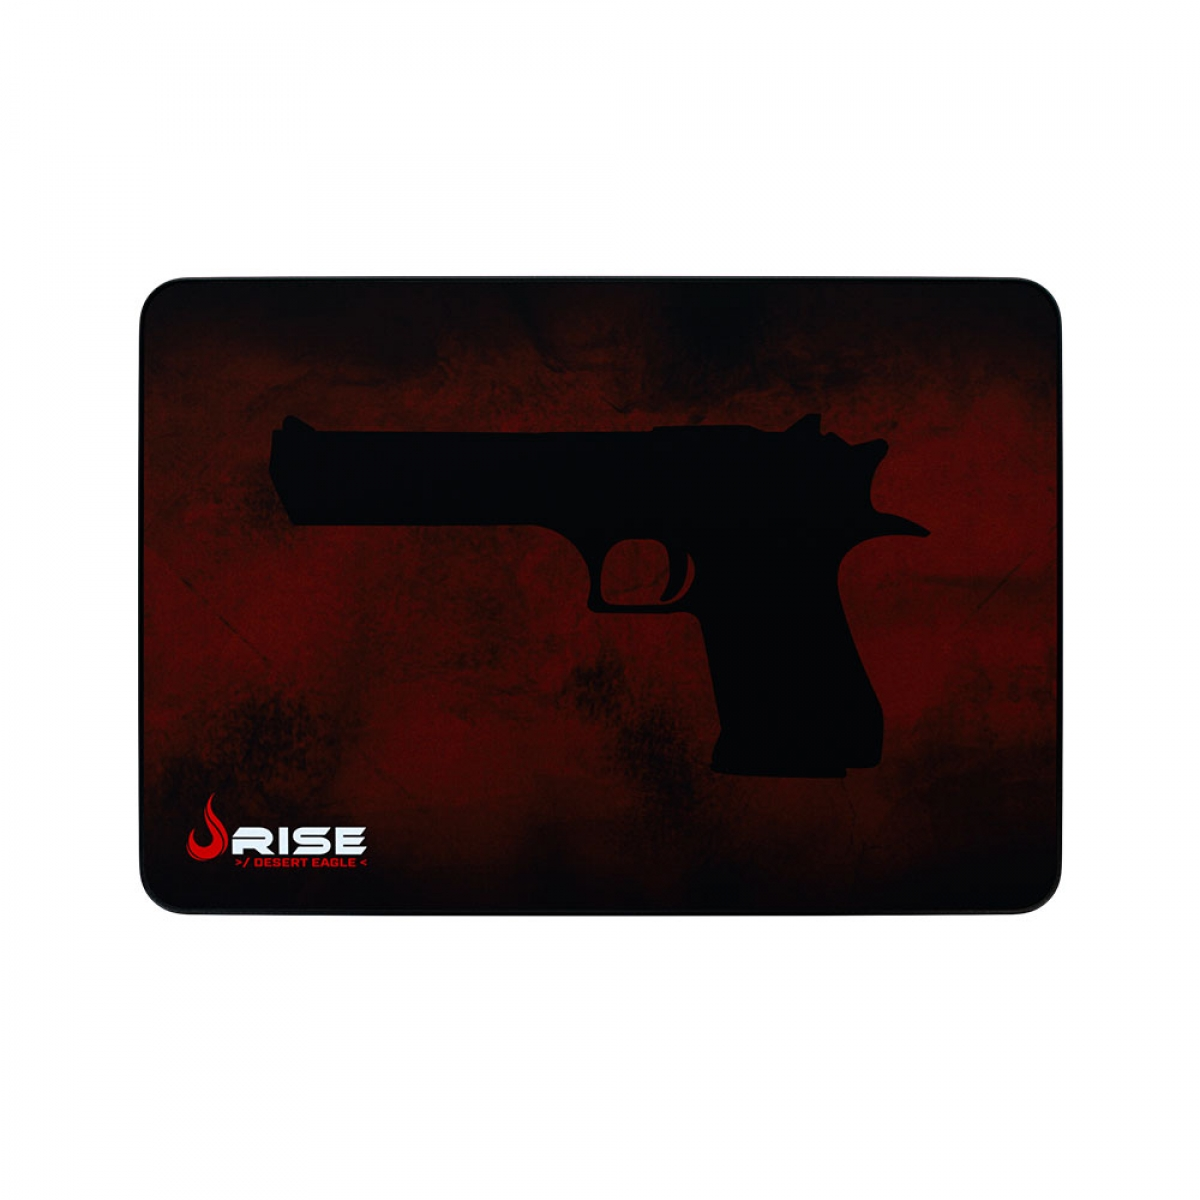 Mouse Pad Gamer Rise Mode DESERT GRANDE BORDA COSTURADA RG-MP-05-DE